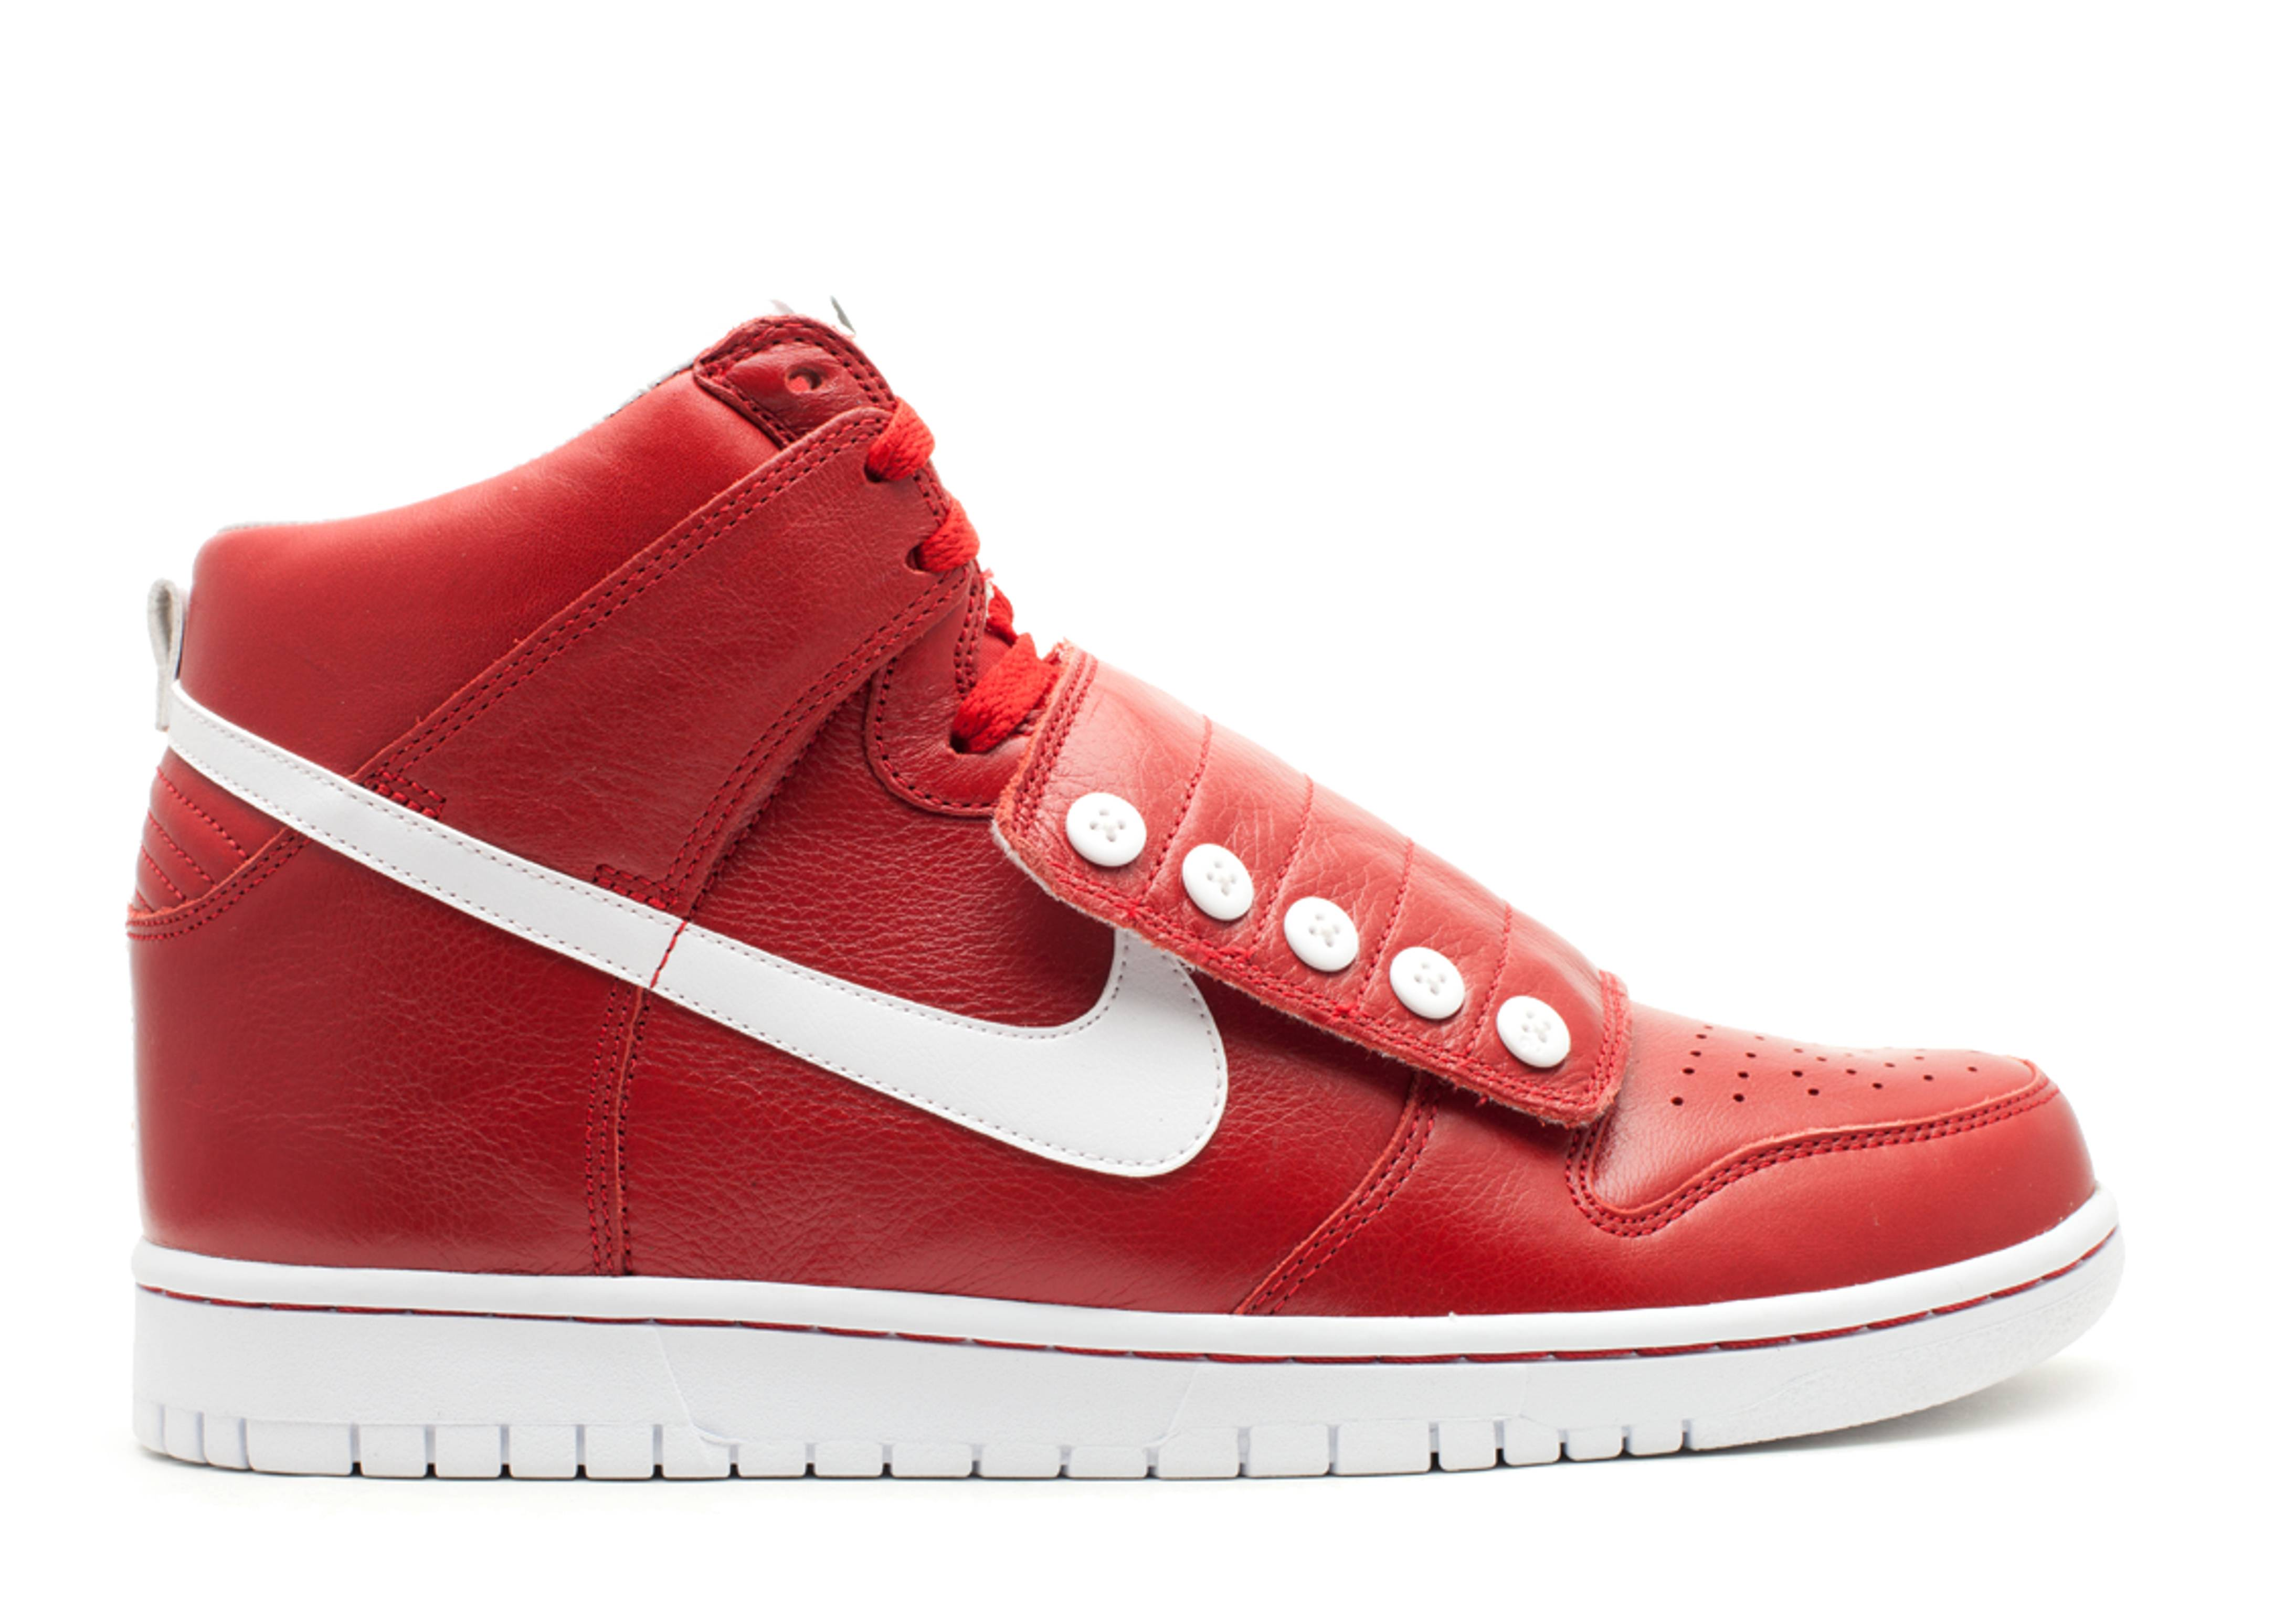 Nike Dunk High Questlove High Strap Sneakers (Varsity Red/White-Black)